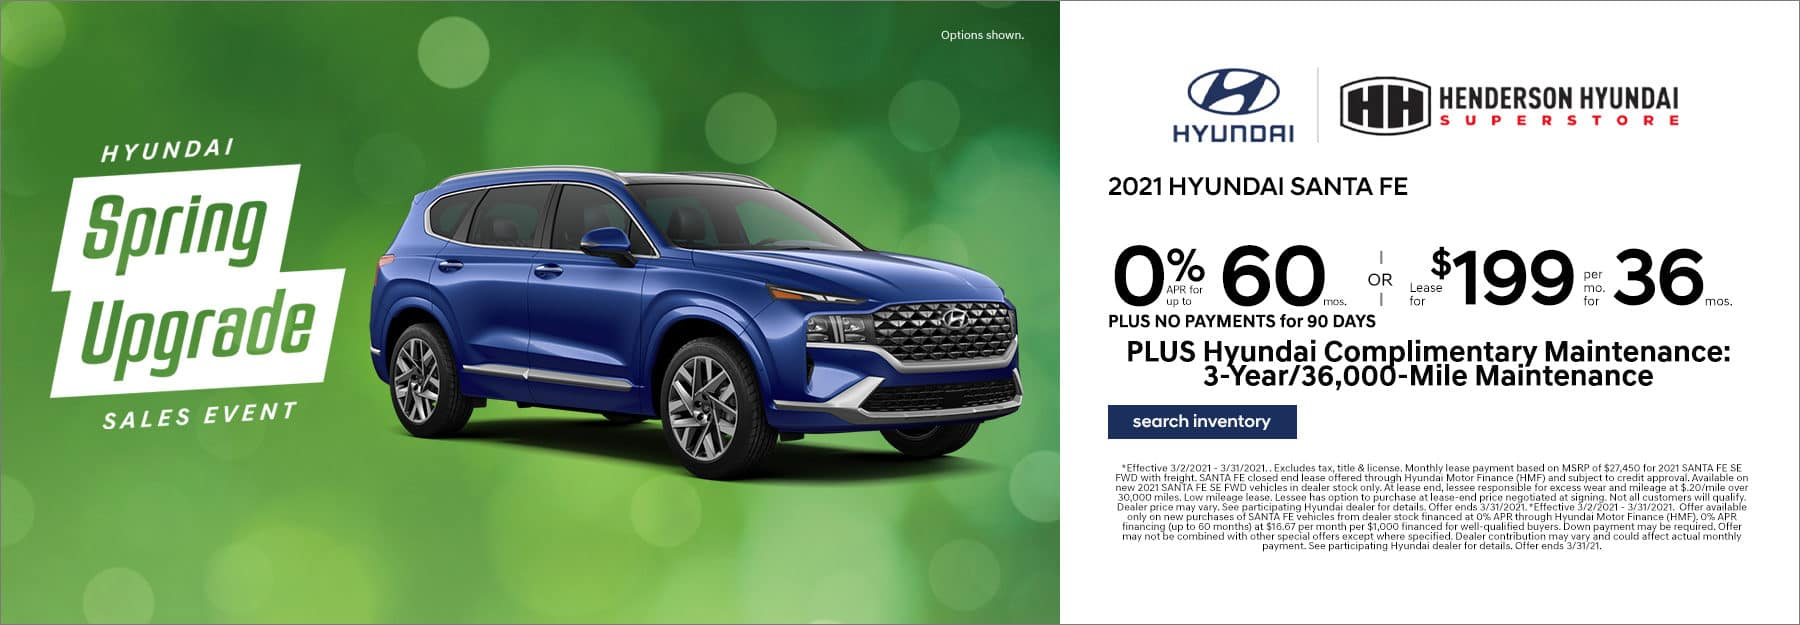 March_2021_Santa FE_Henderson Hyundai